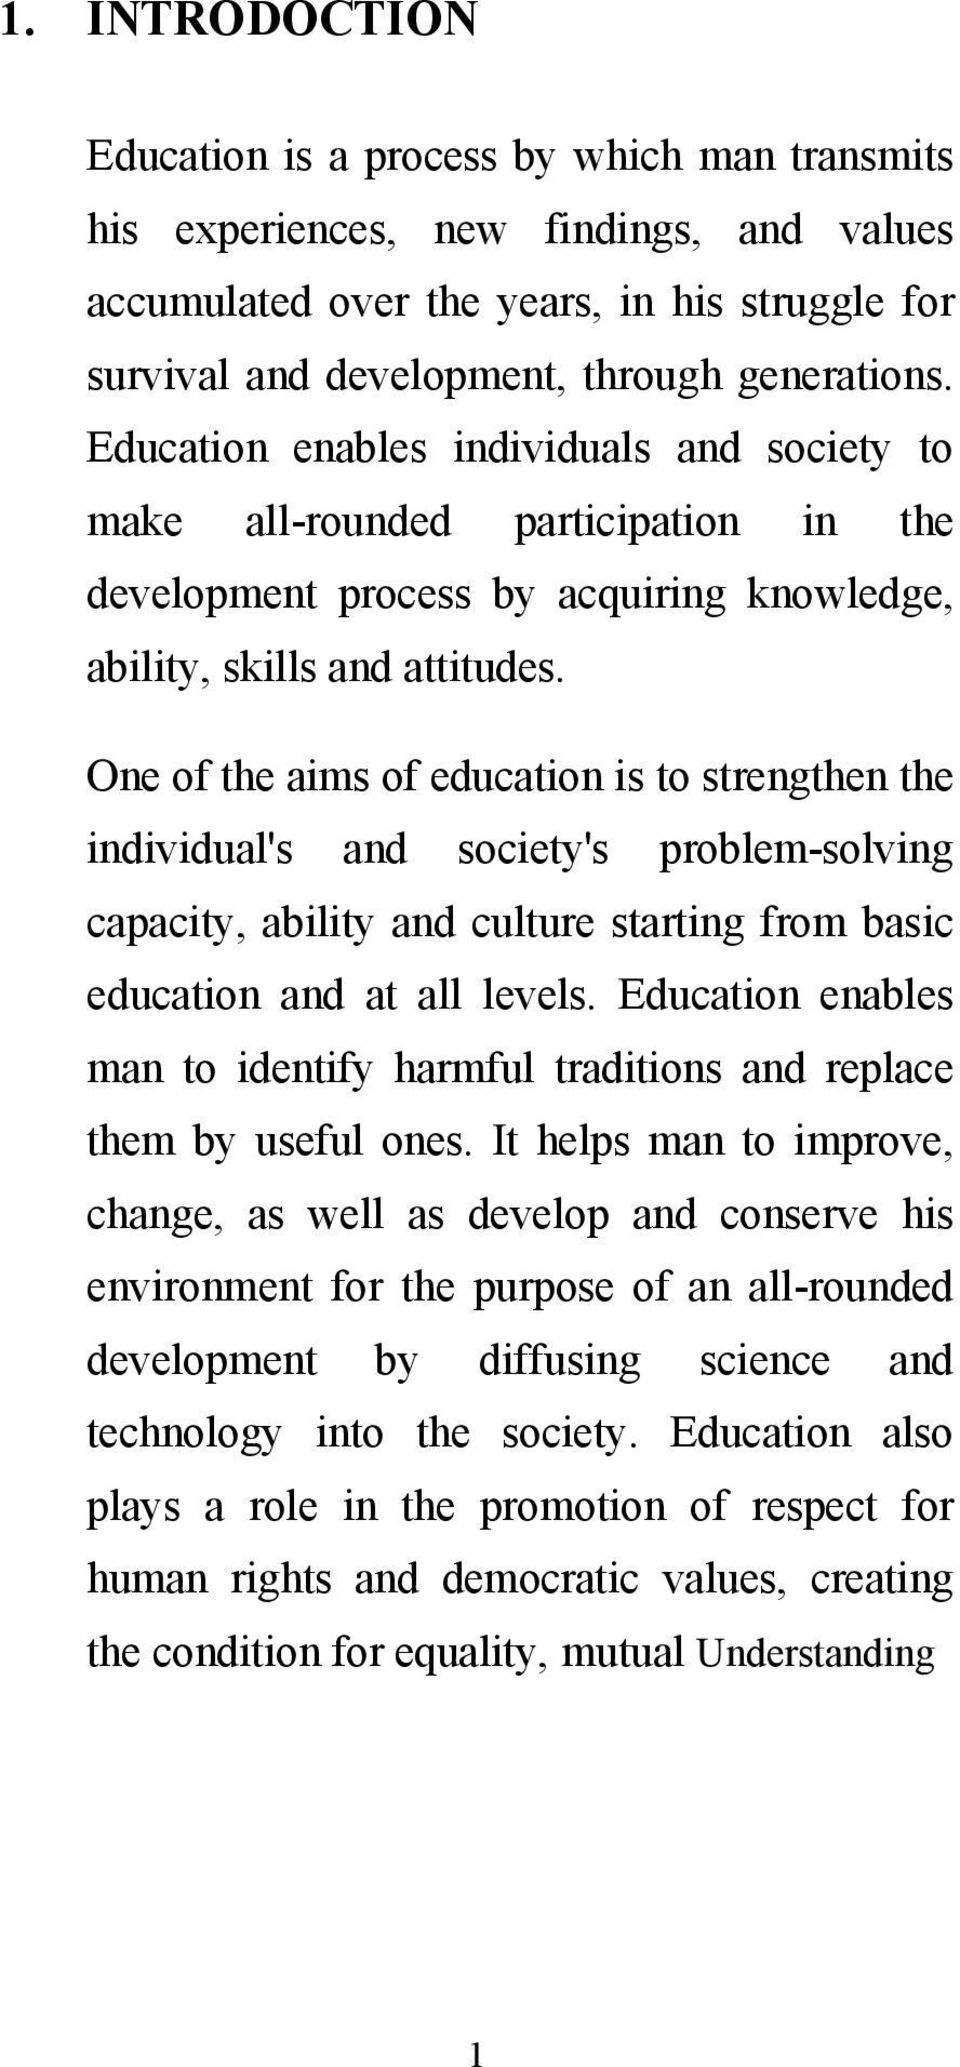 One of the aims of education is to strengthen the individual's and society's problem-solving capacity, ability and culture starting from basic education and at all levels.